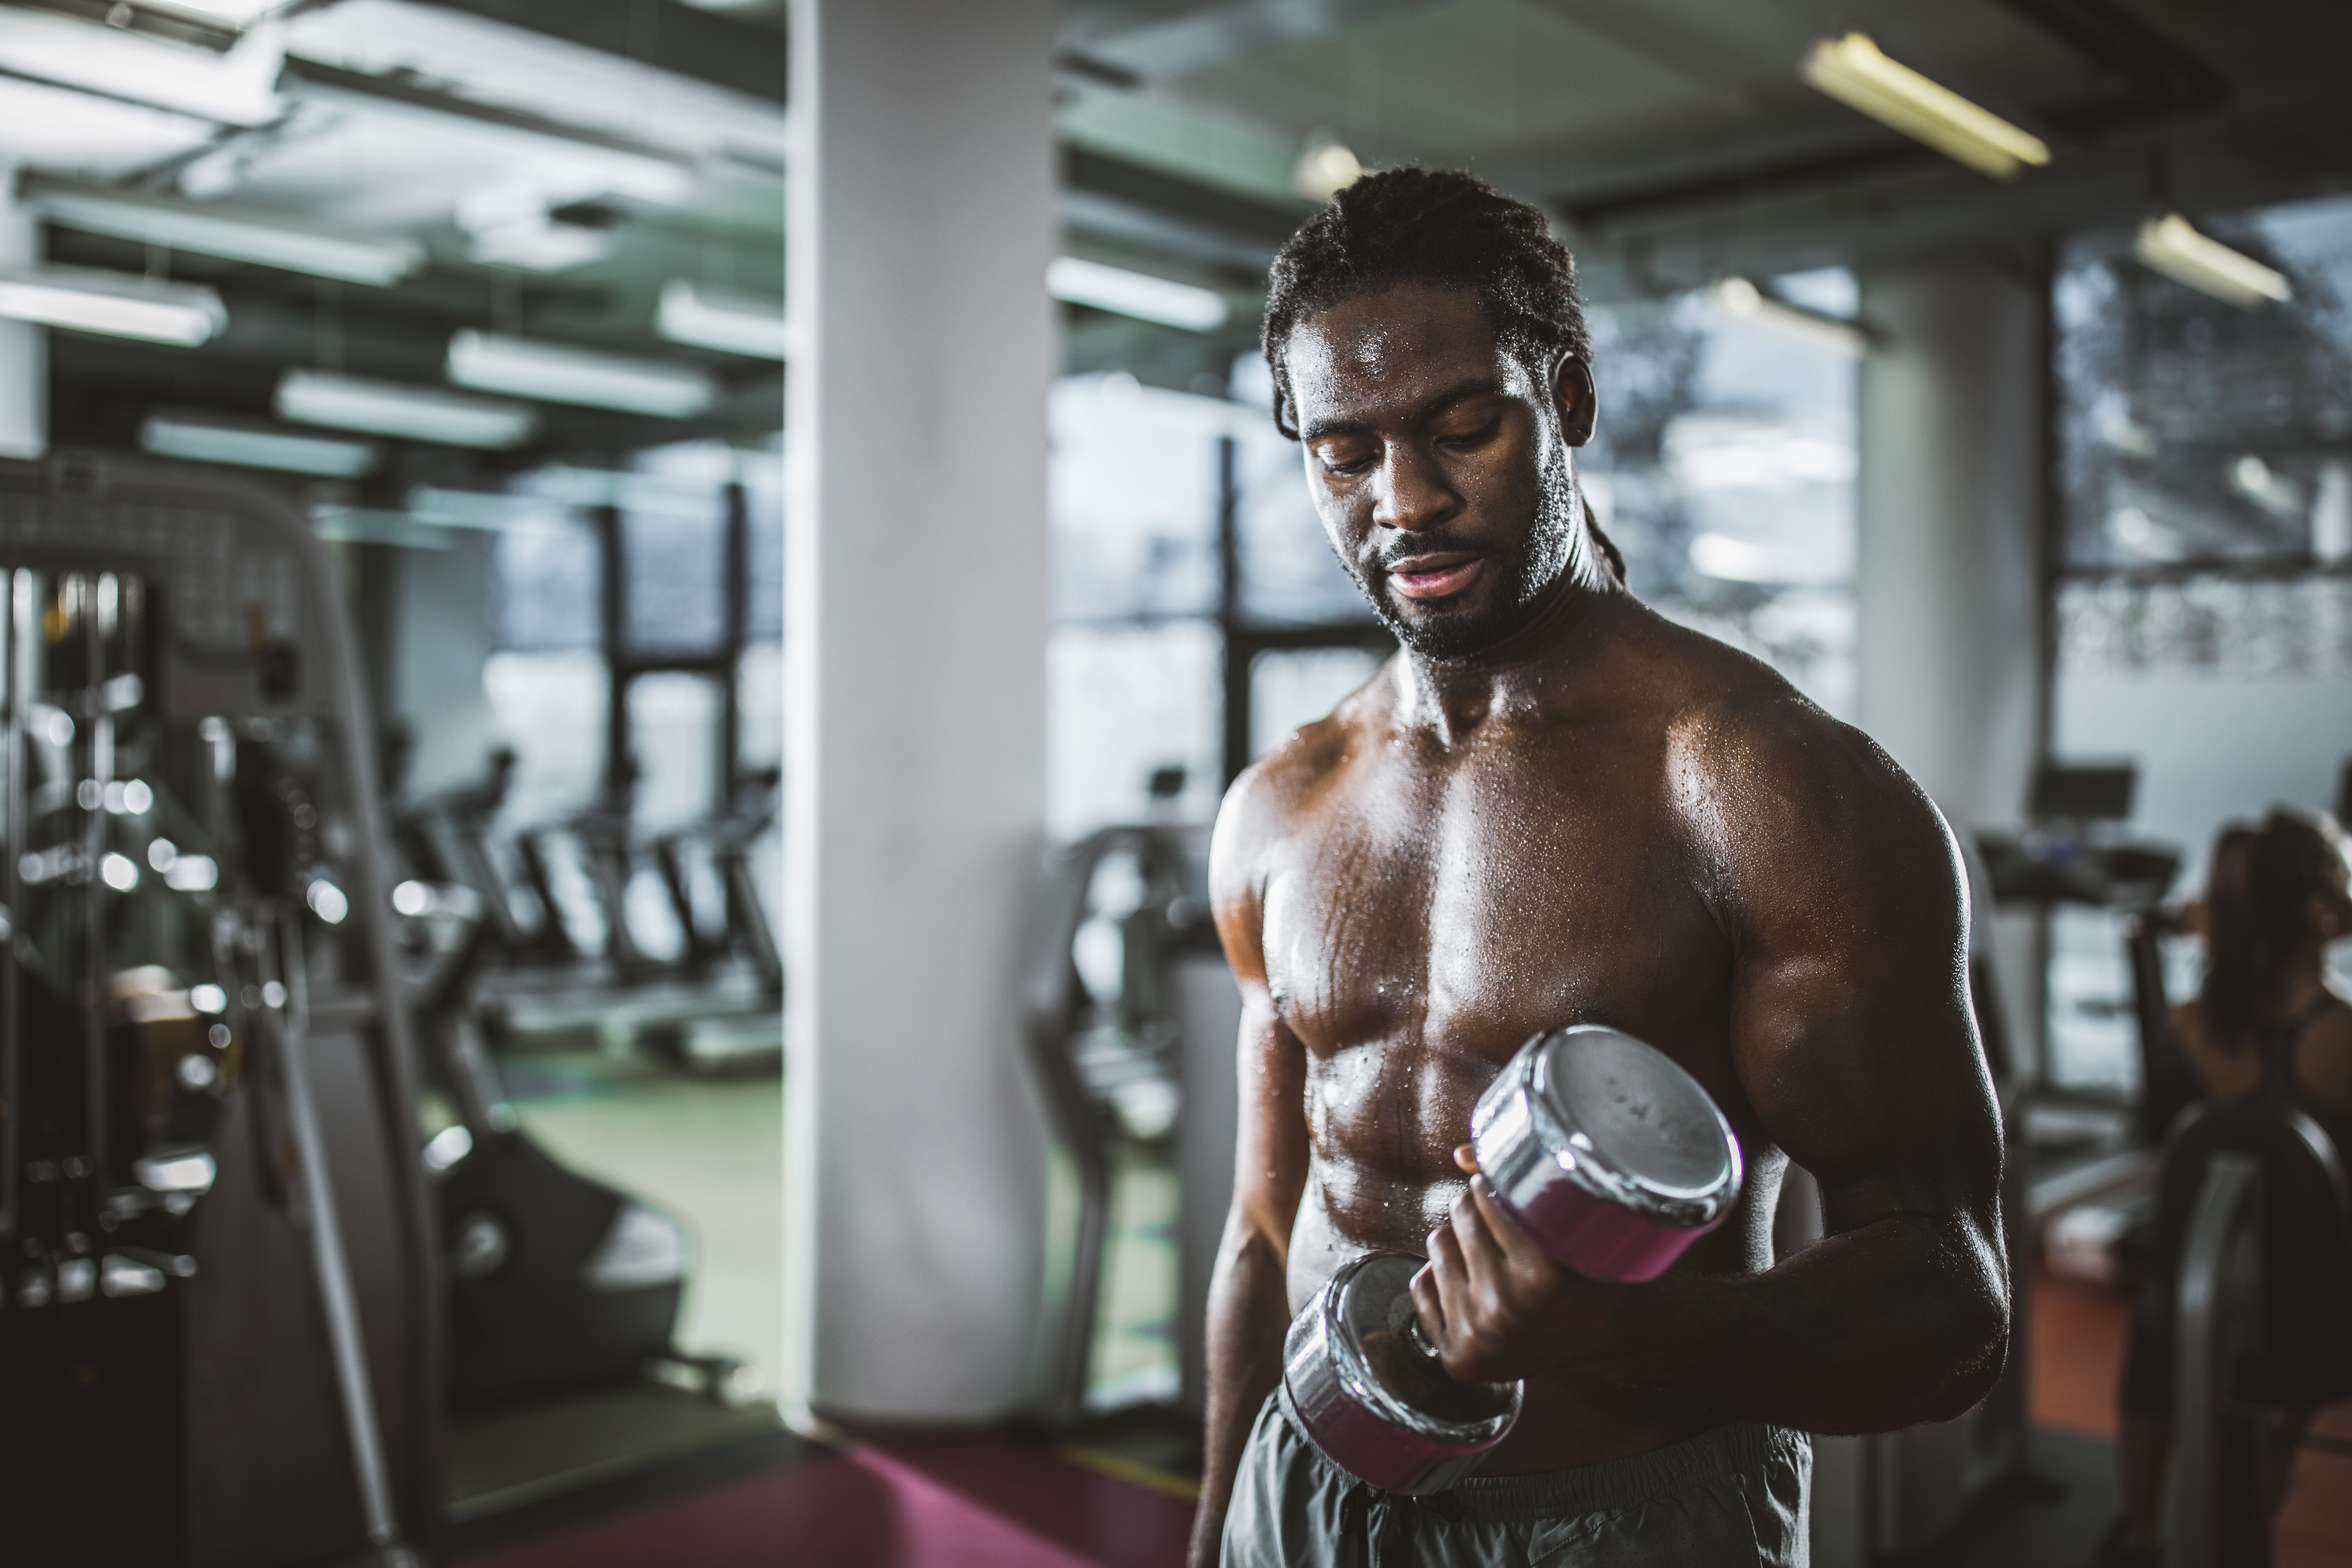 Test Your Fitness, Build Muscle and Spark Your Metabolism With Our Dumbbell-Only Workout Challenge